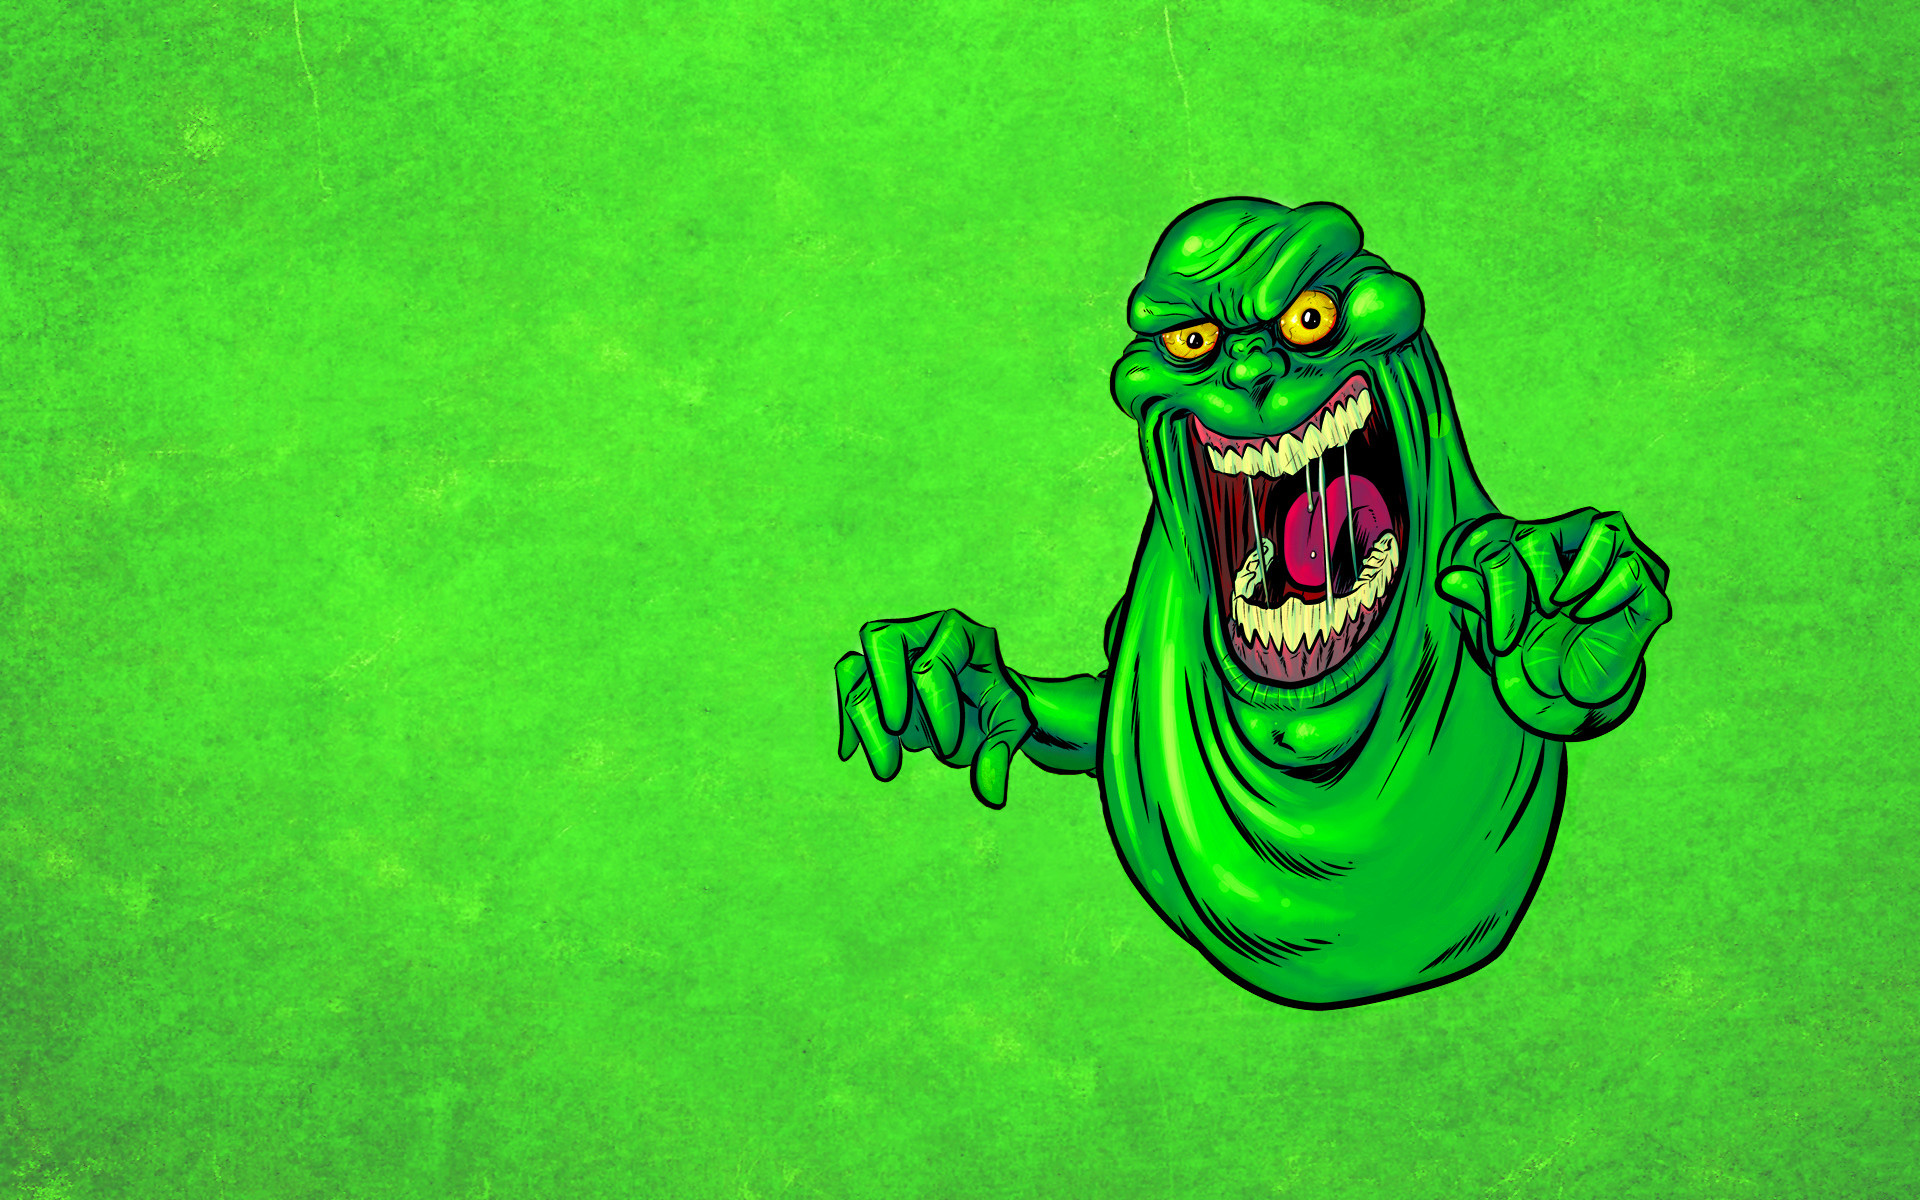 Related Wallpapers from Silver Surfer Wallpaper. Slimer ghostbusters